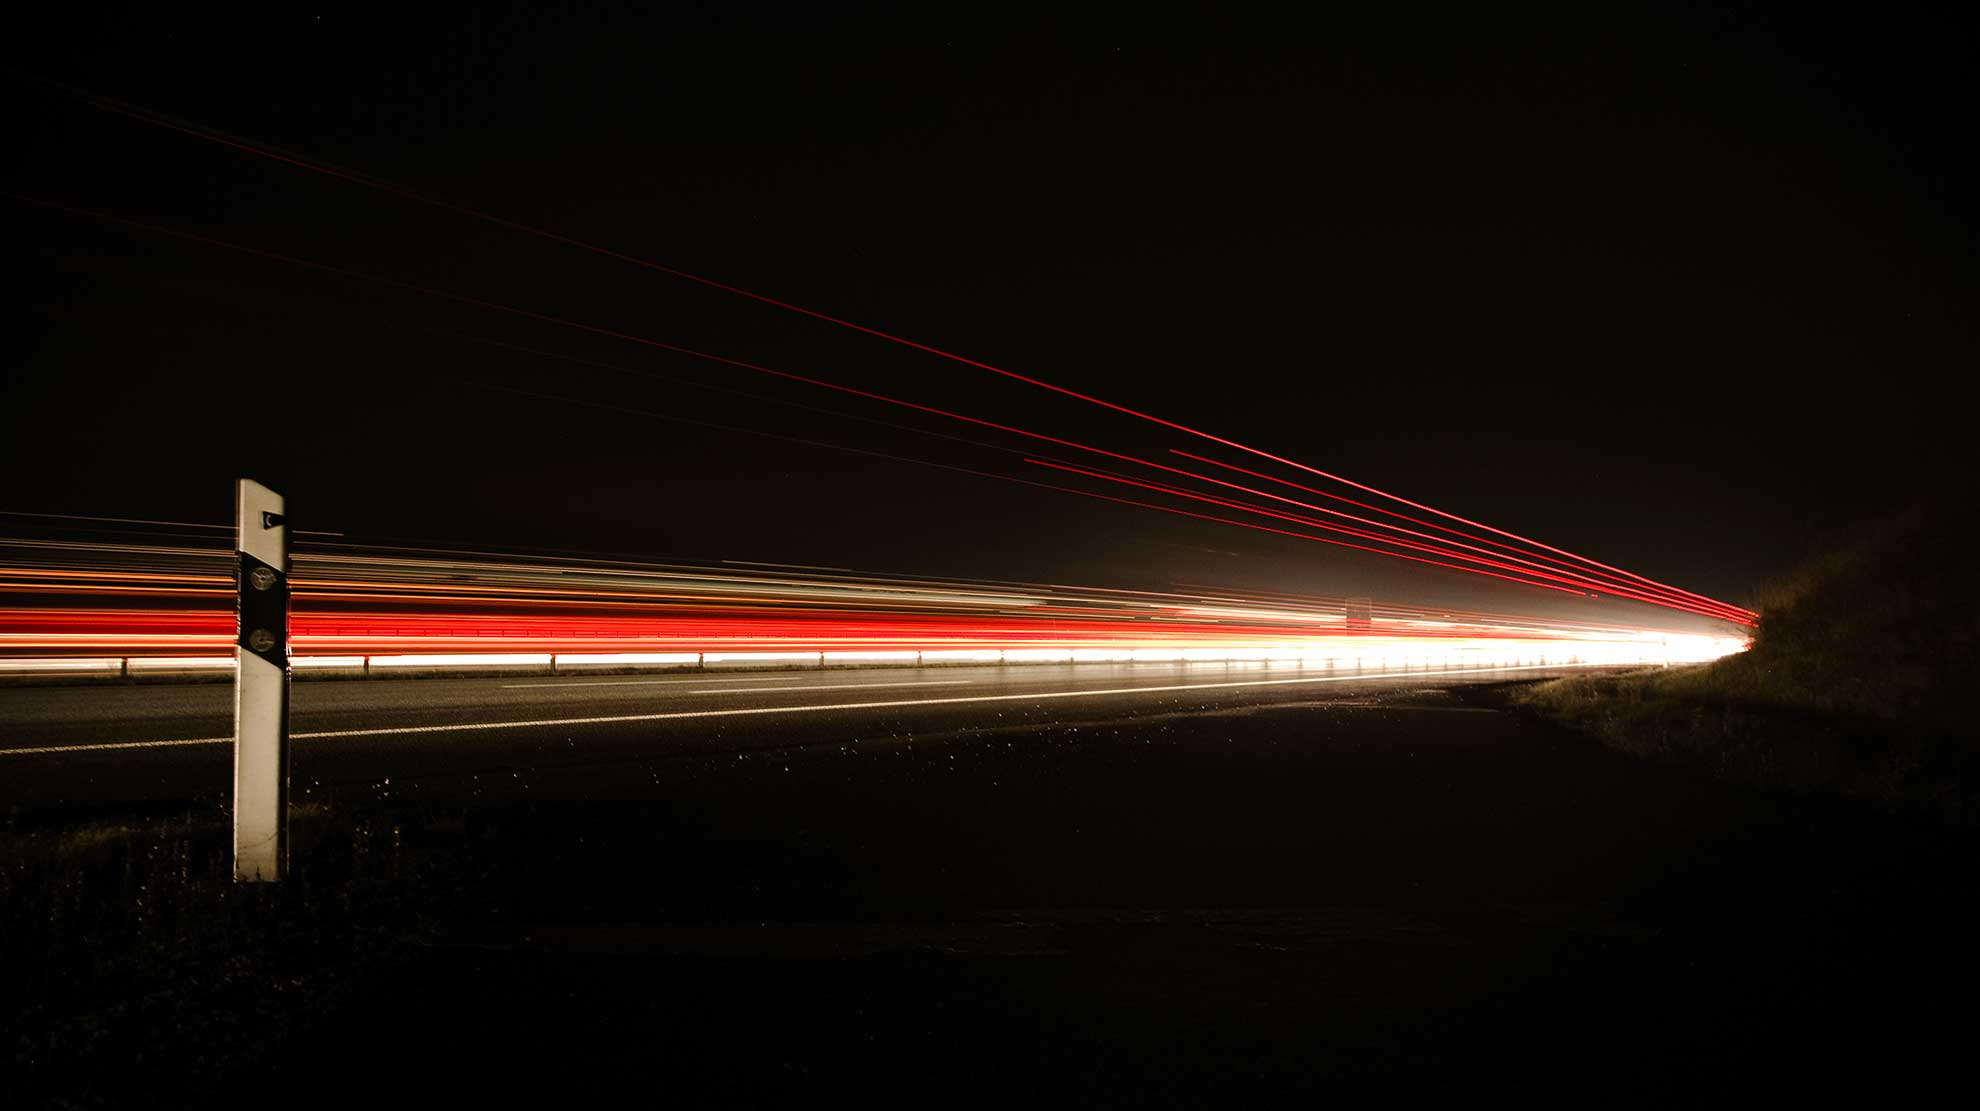 Red and white light caused by speedy object